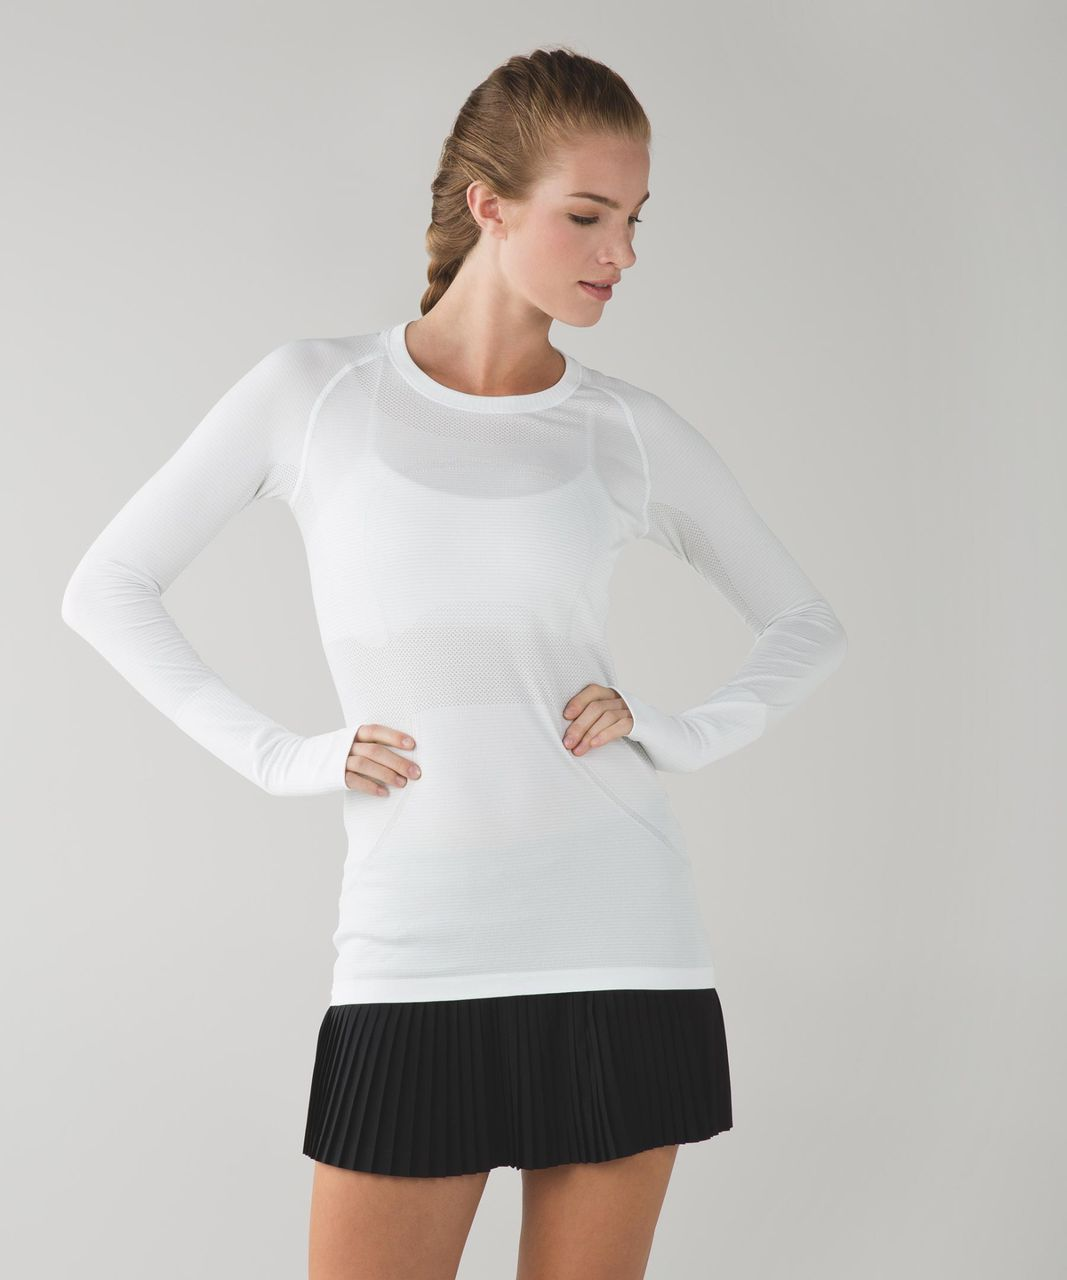 Lululemon Swiftly Tech Long Sleeve Crew - Heathered White